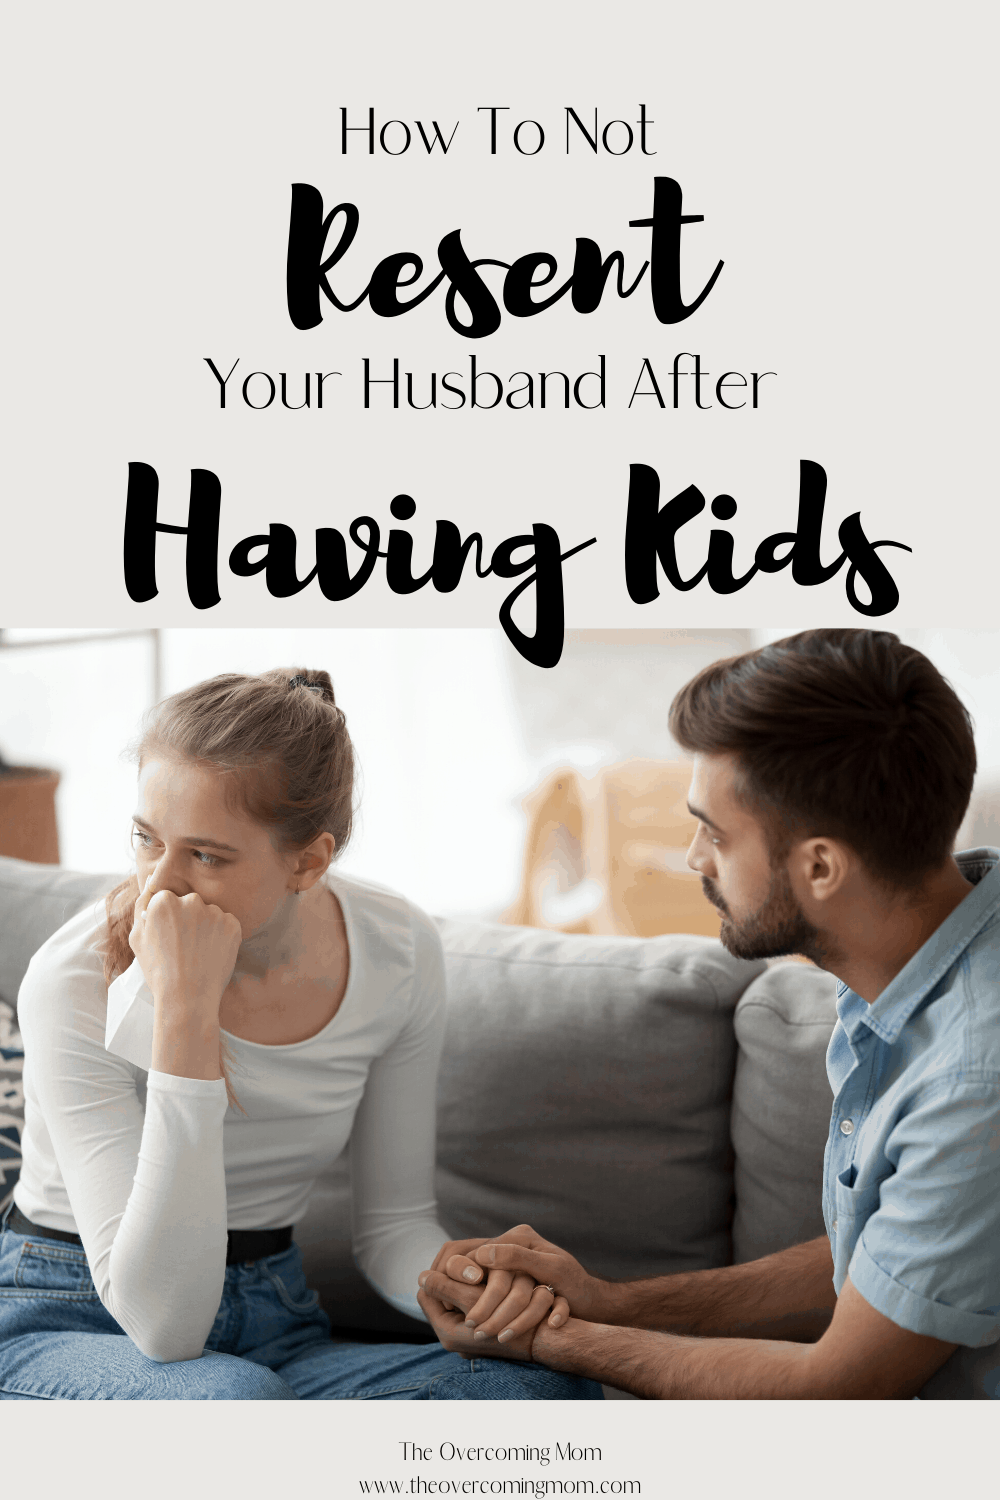 How To Not Resent Your Husband After Having Kids